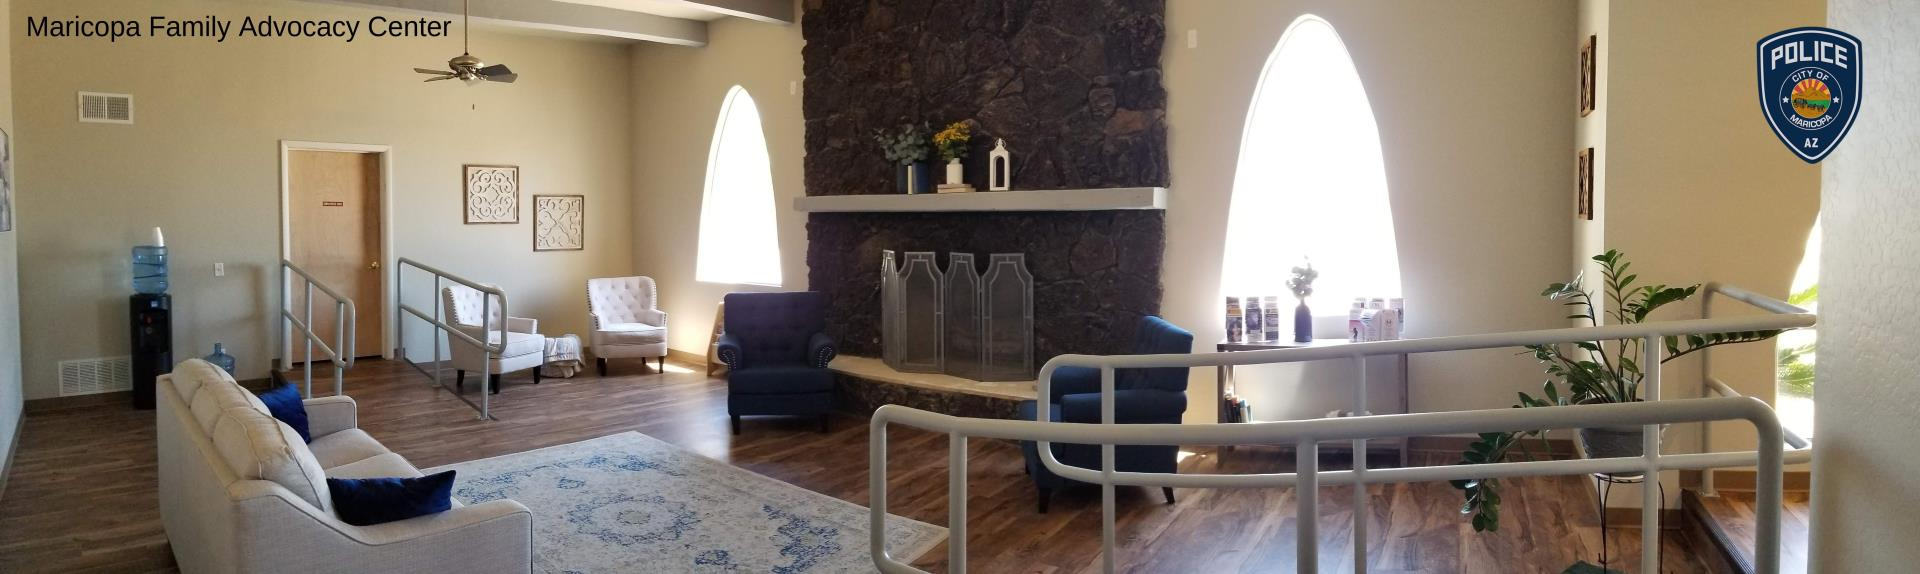 Panoramic photo of the FAC waiting area from the Volunteer Desk